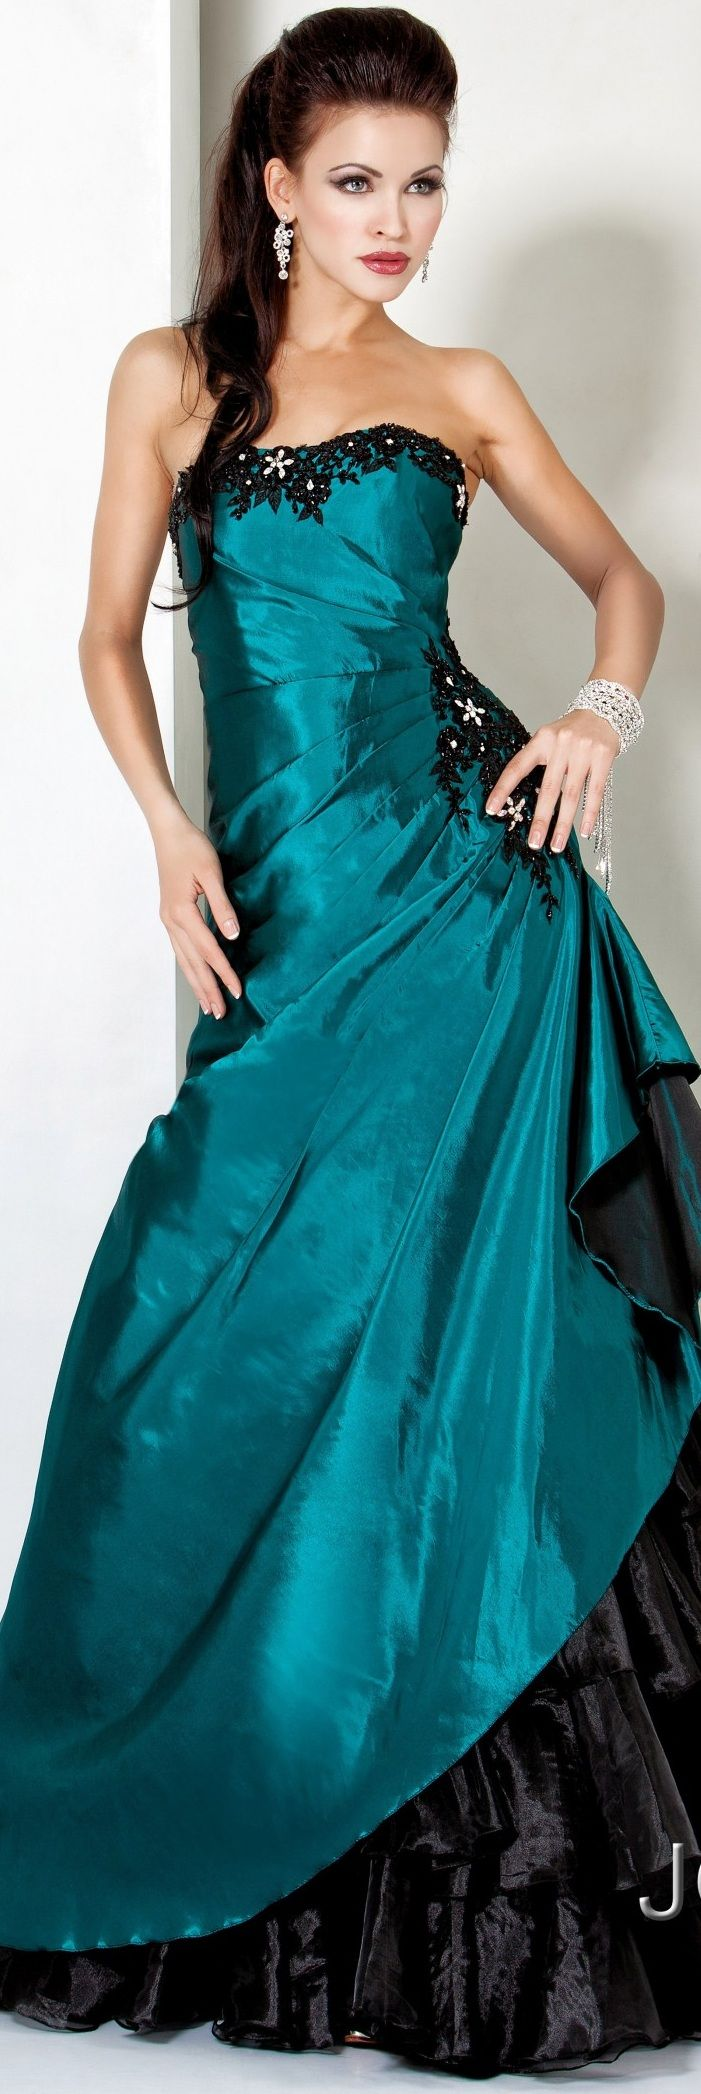 247 best Teal images on Pinterest | Party dresses, Party outfits and ...